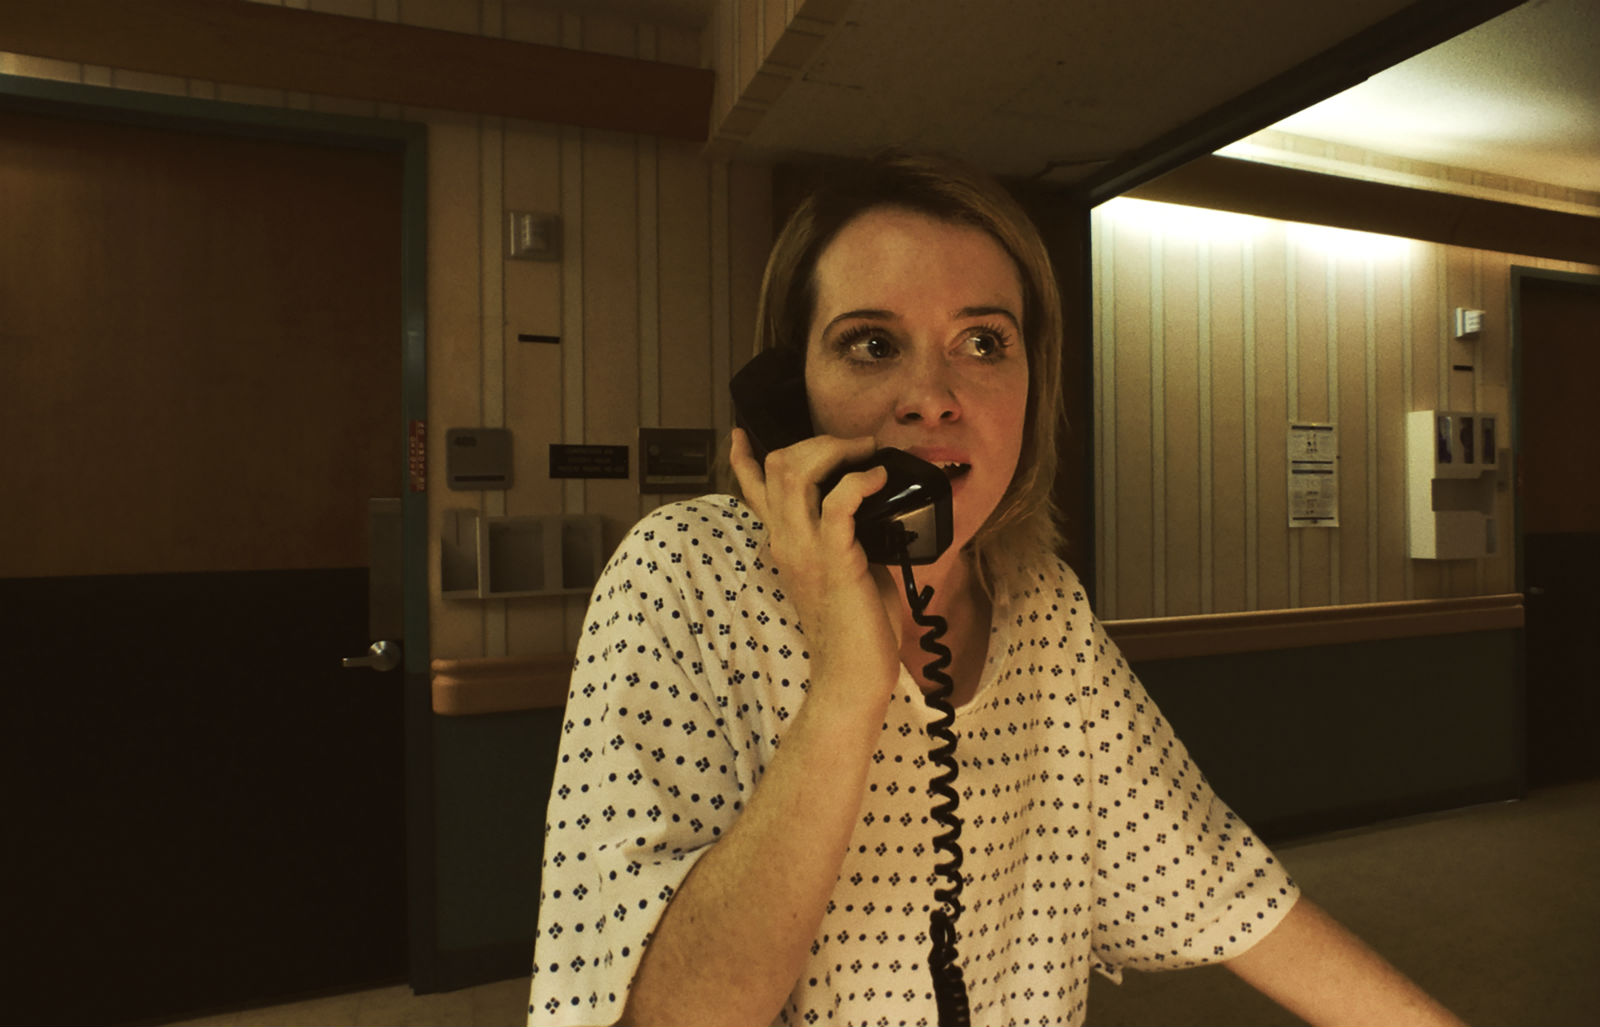 Claire Foy calls the cops in Unsane. Yeah, good luck with that...